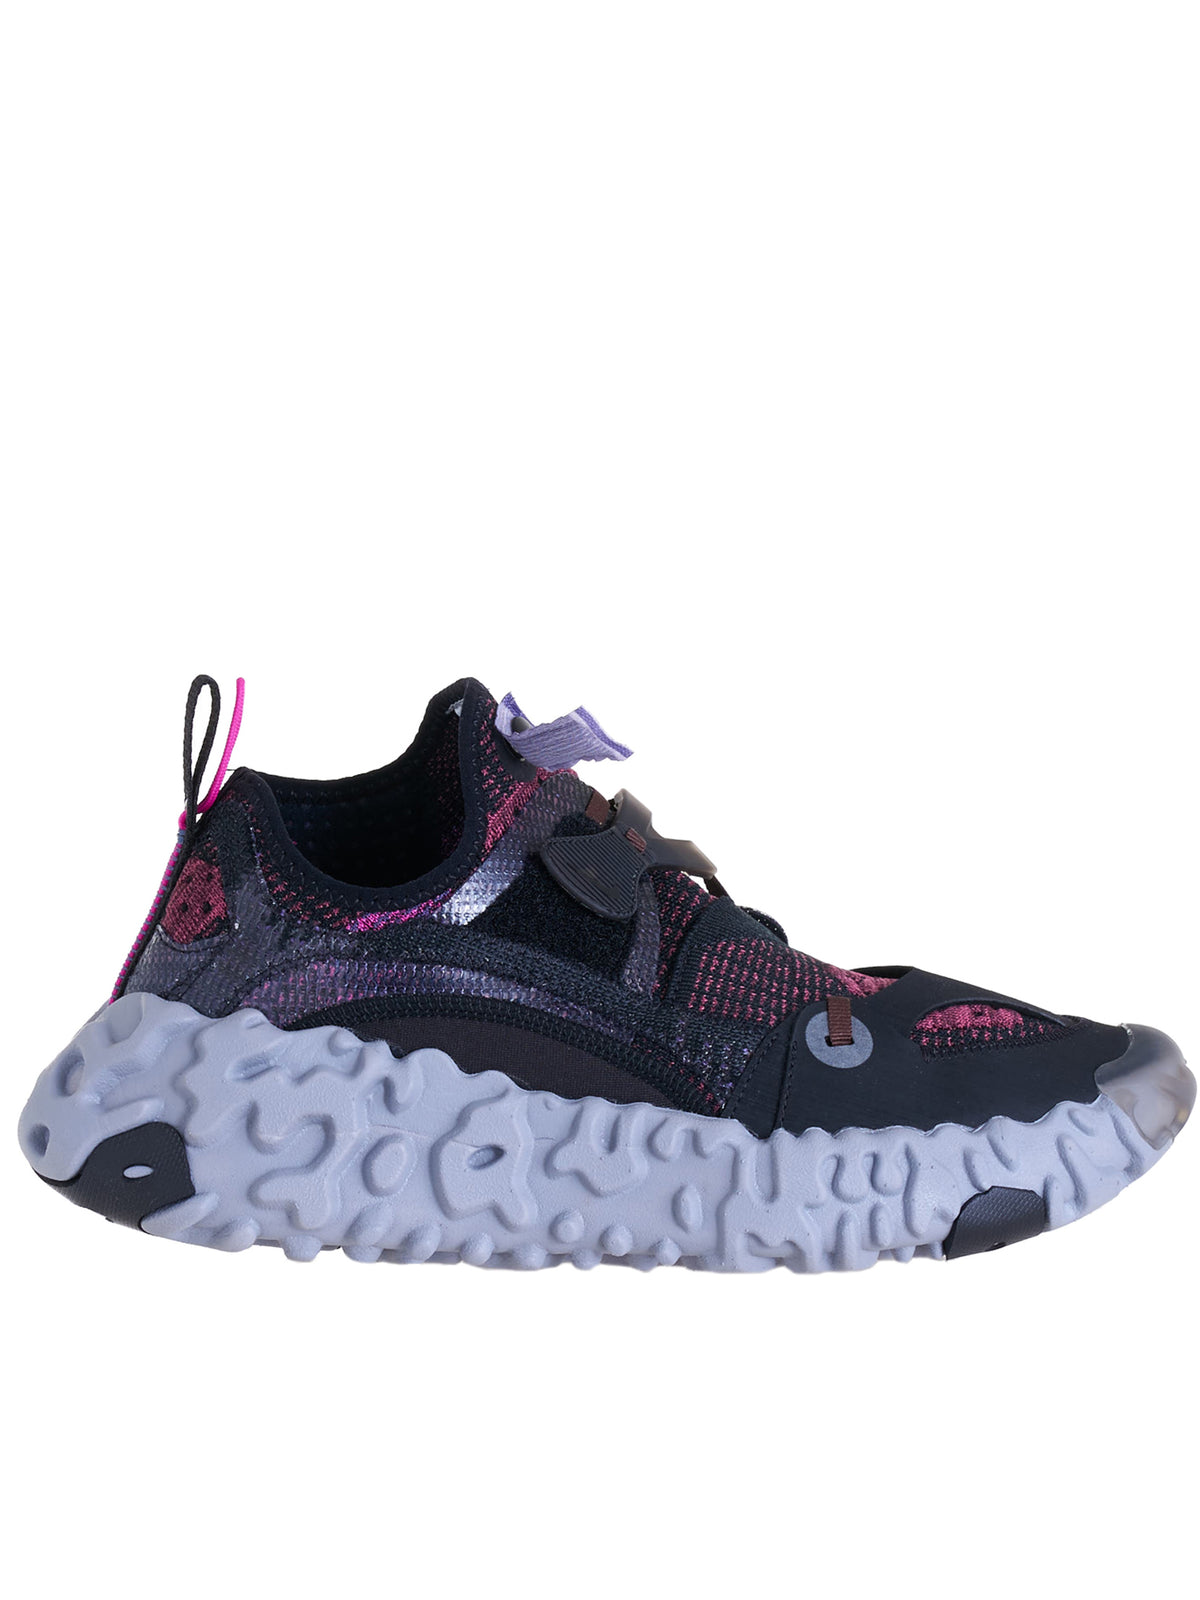 Overreact Flyknit ISPA (CD9664-002-BLACK-DIFFUSED-BLUE)